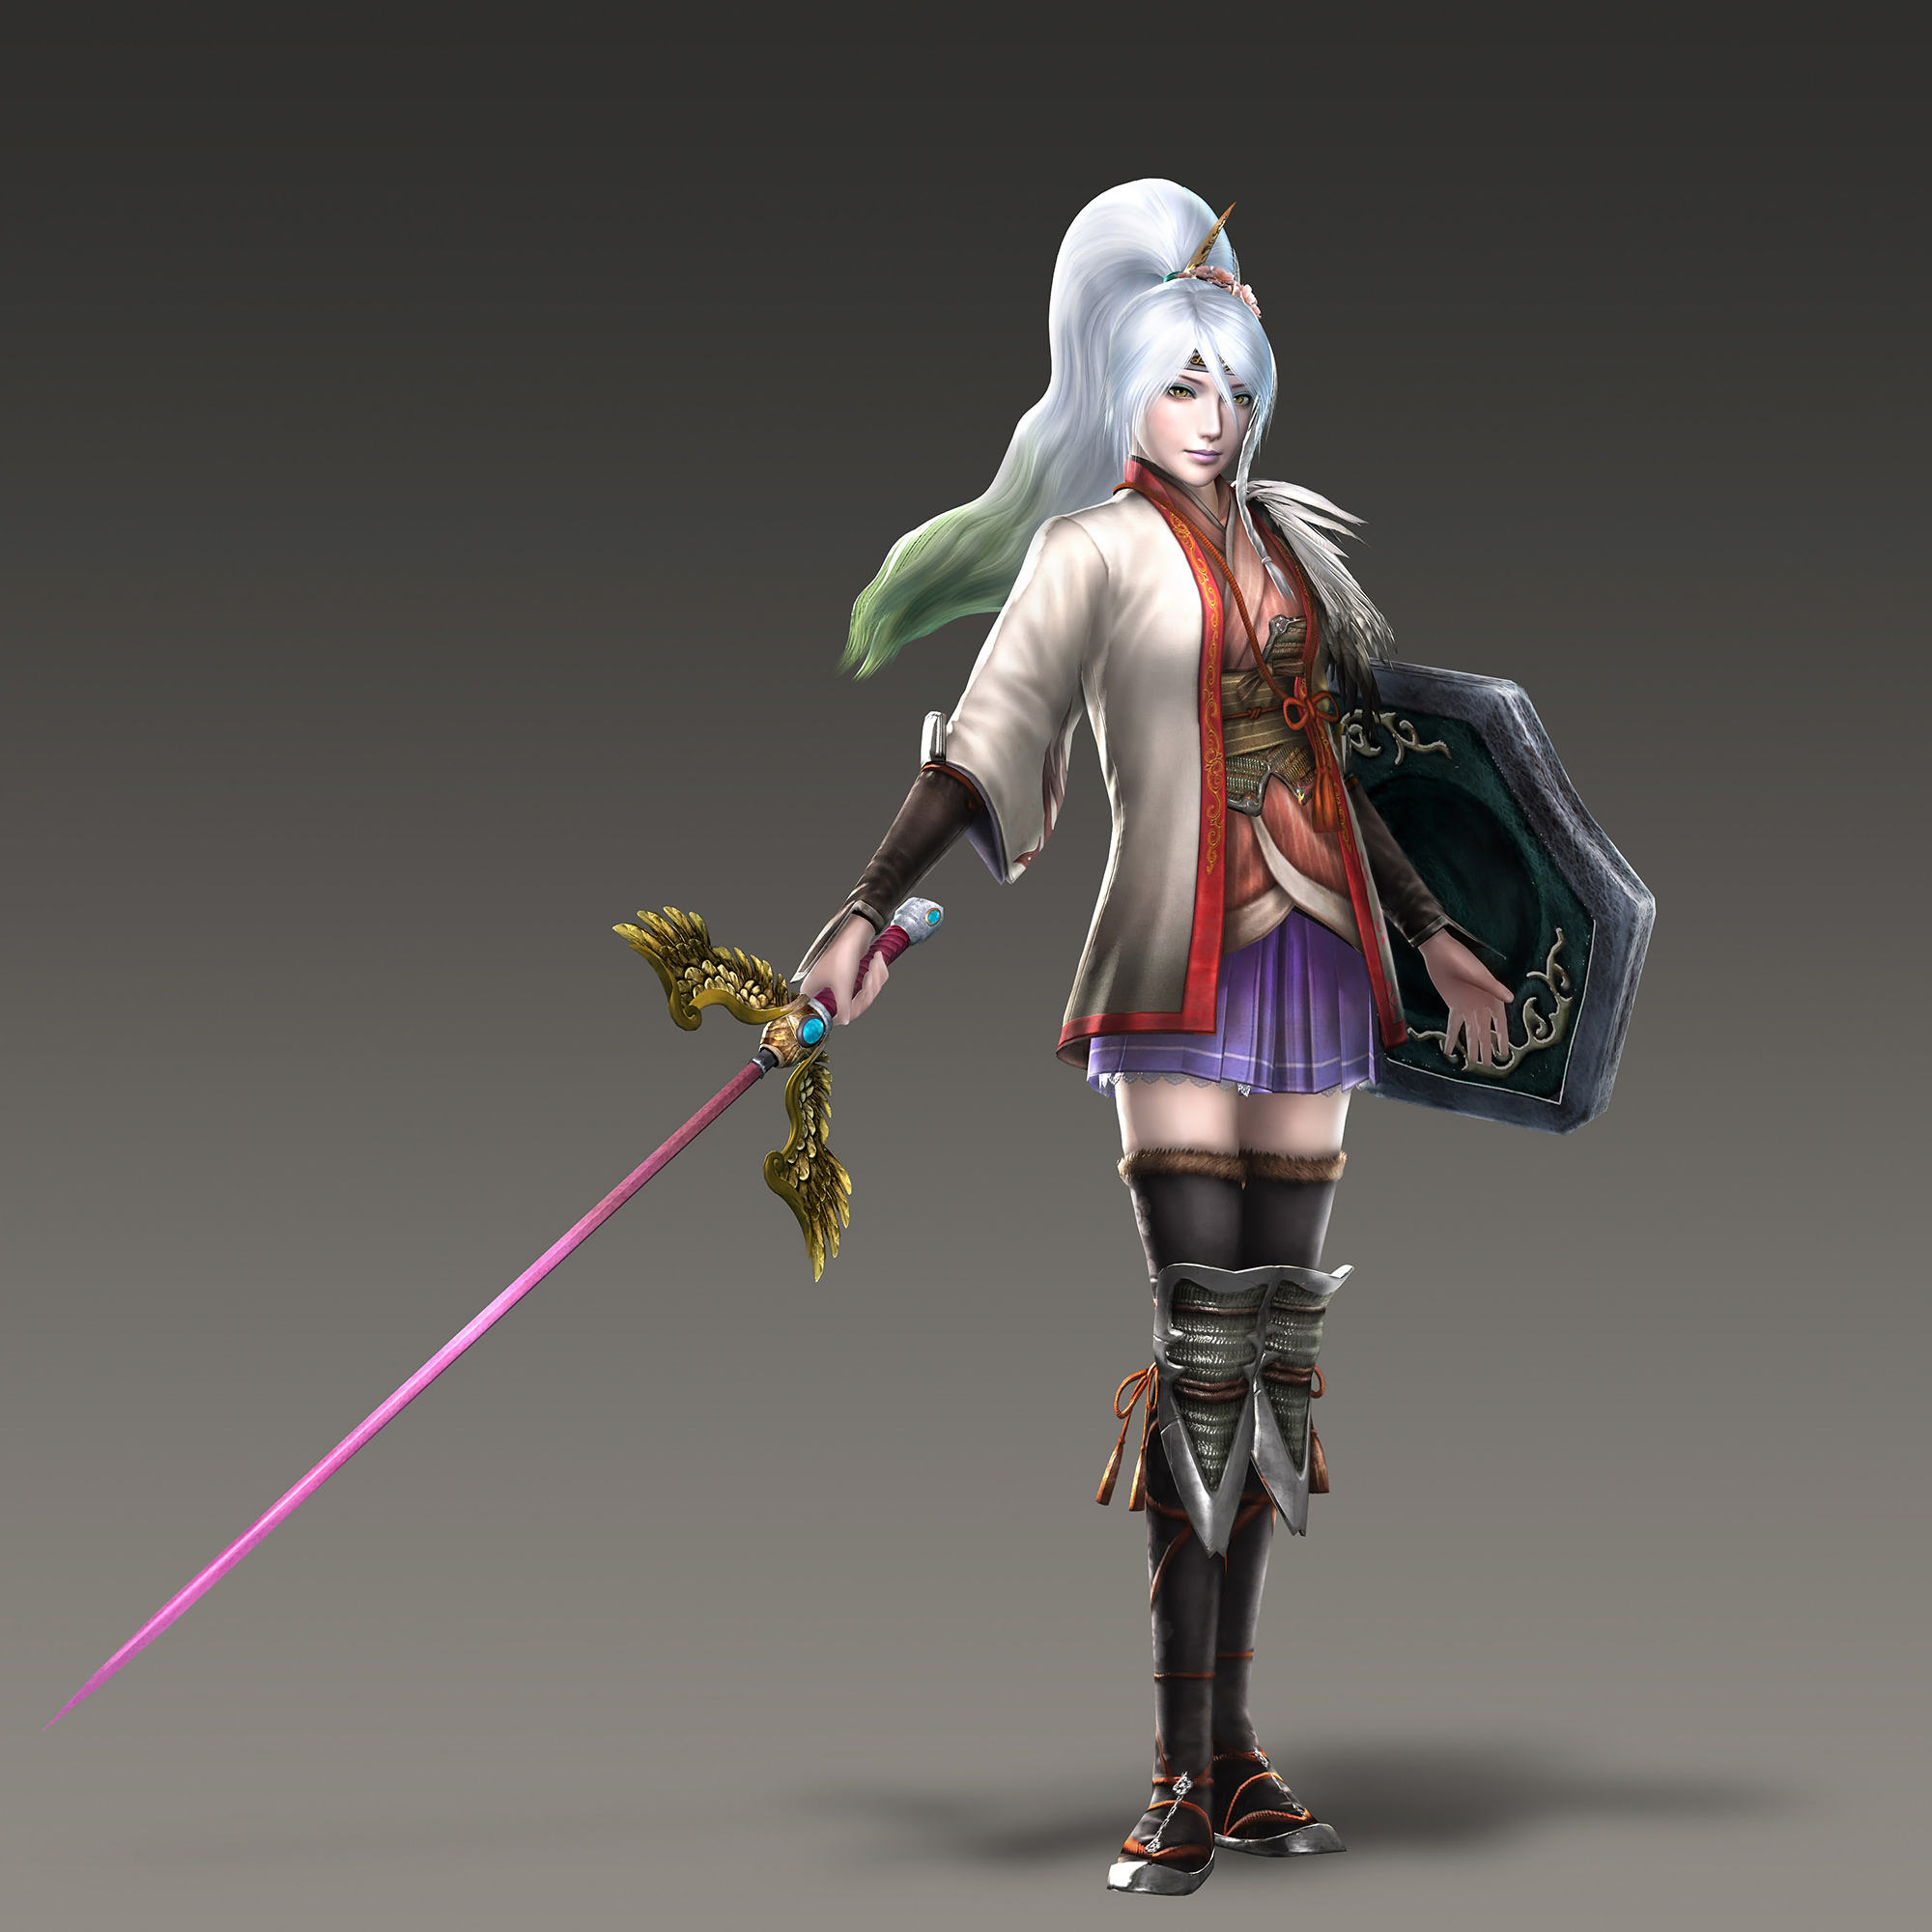 Warriors Orochi 3 Ultimate All Dlc Costumes: Warriors Orochi 3